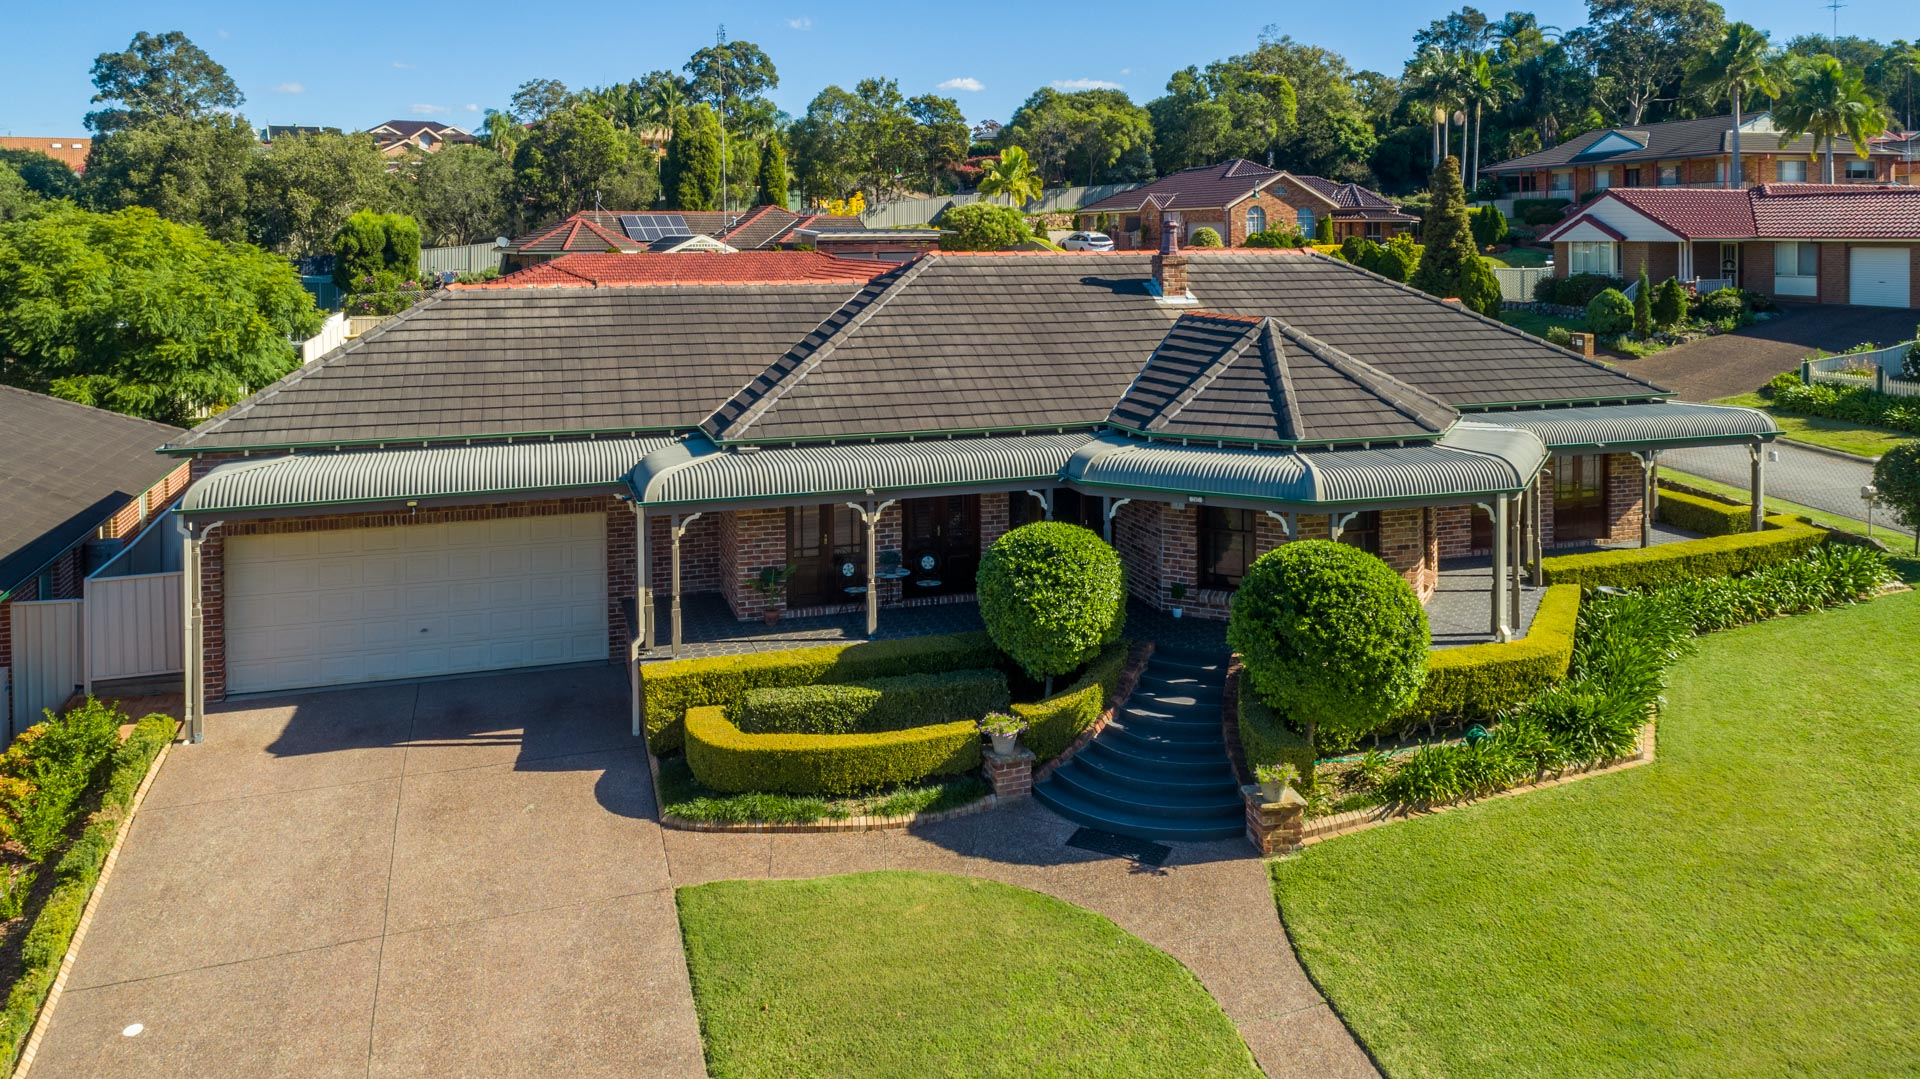 1 Staveley Crt  Lakelands Aerial 2 of 4 74800211